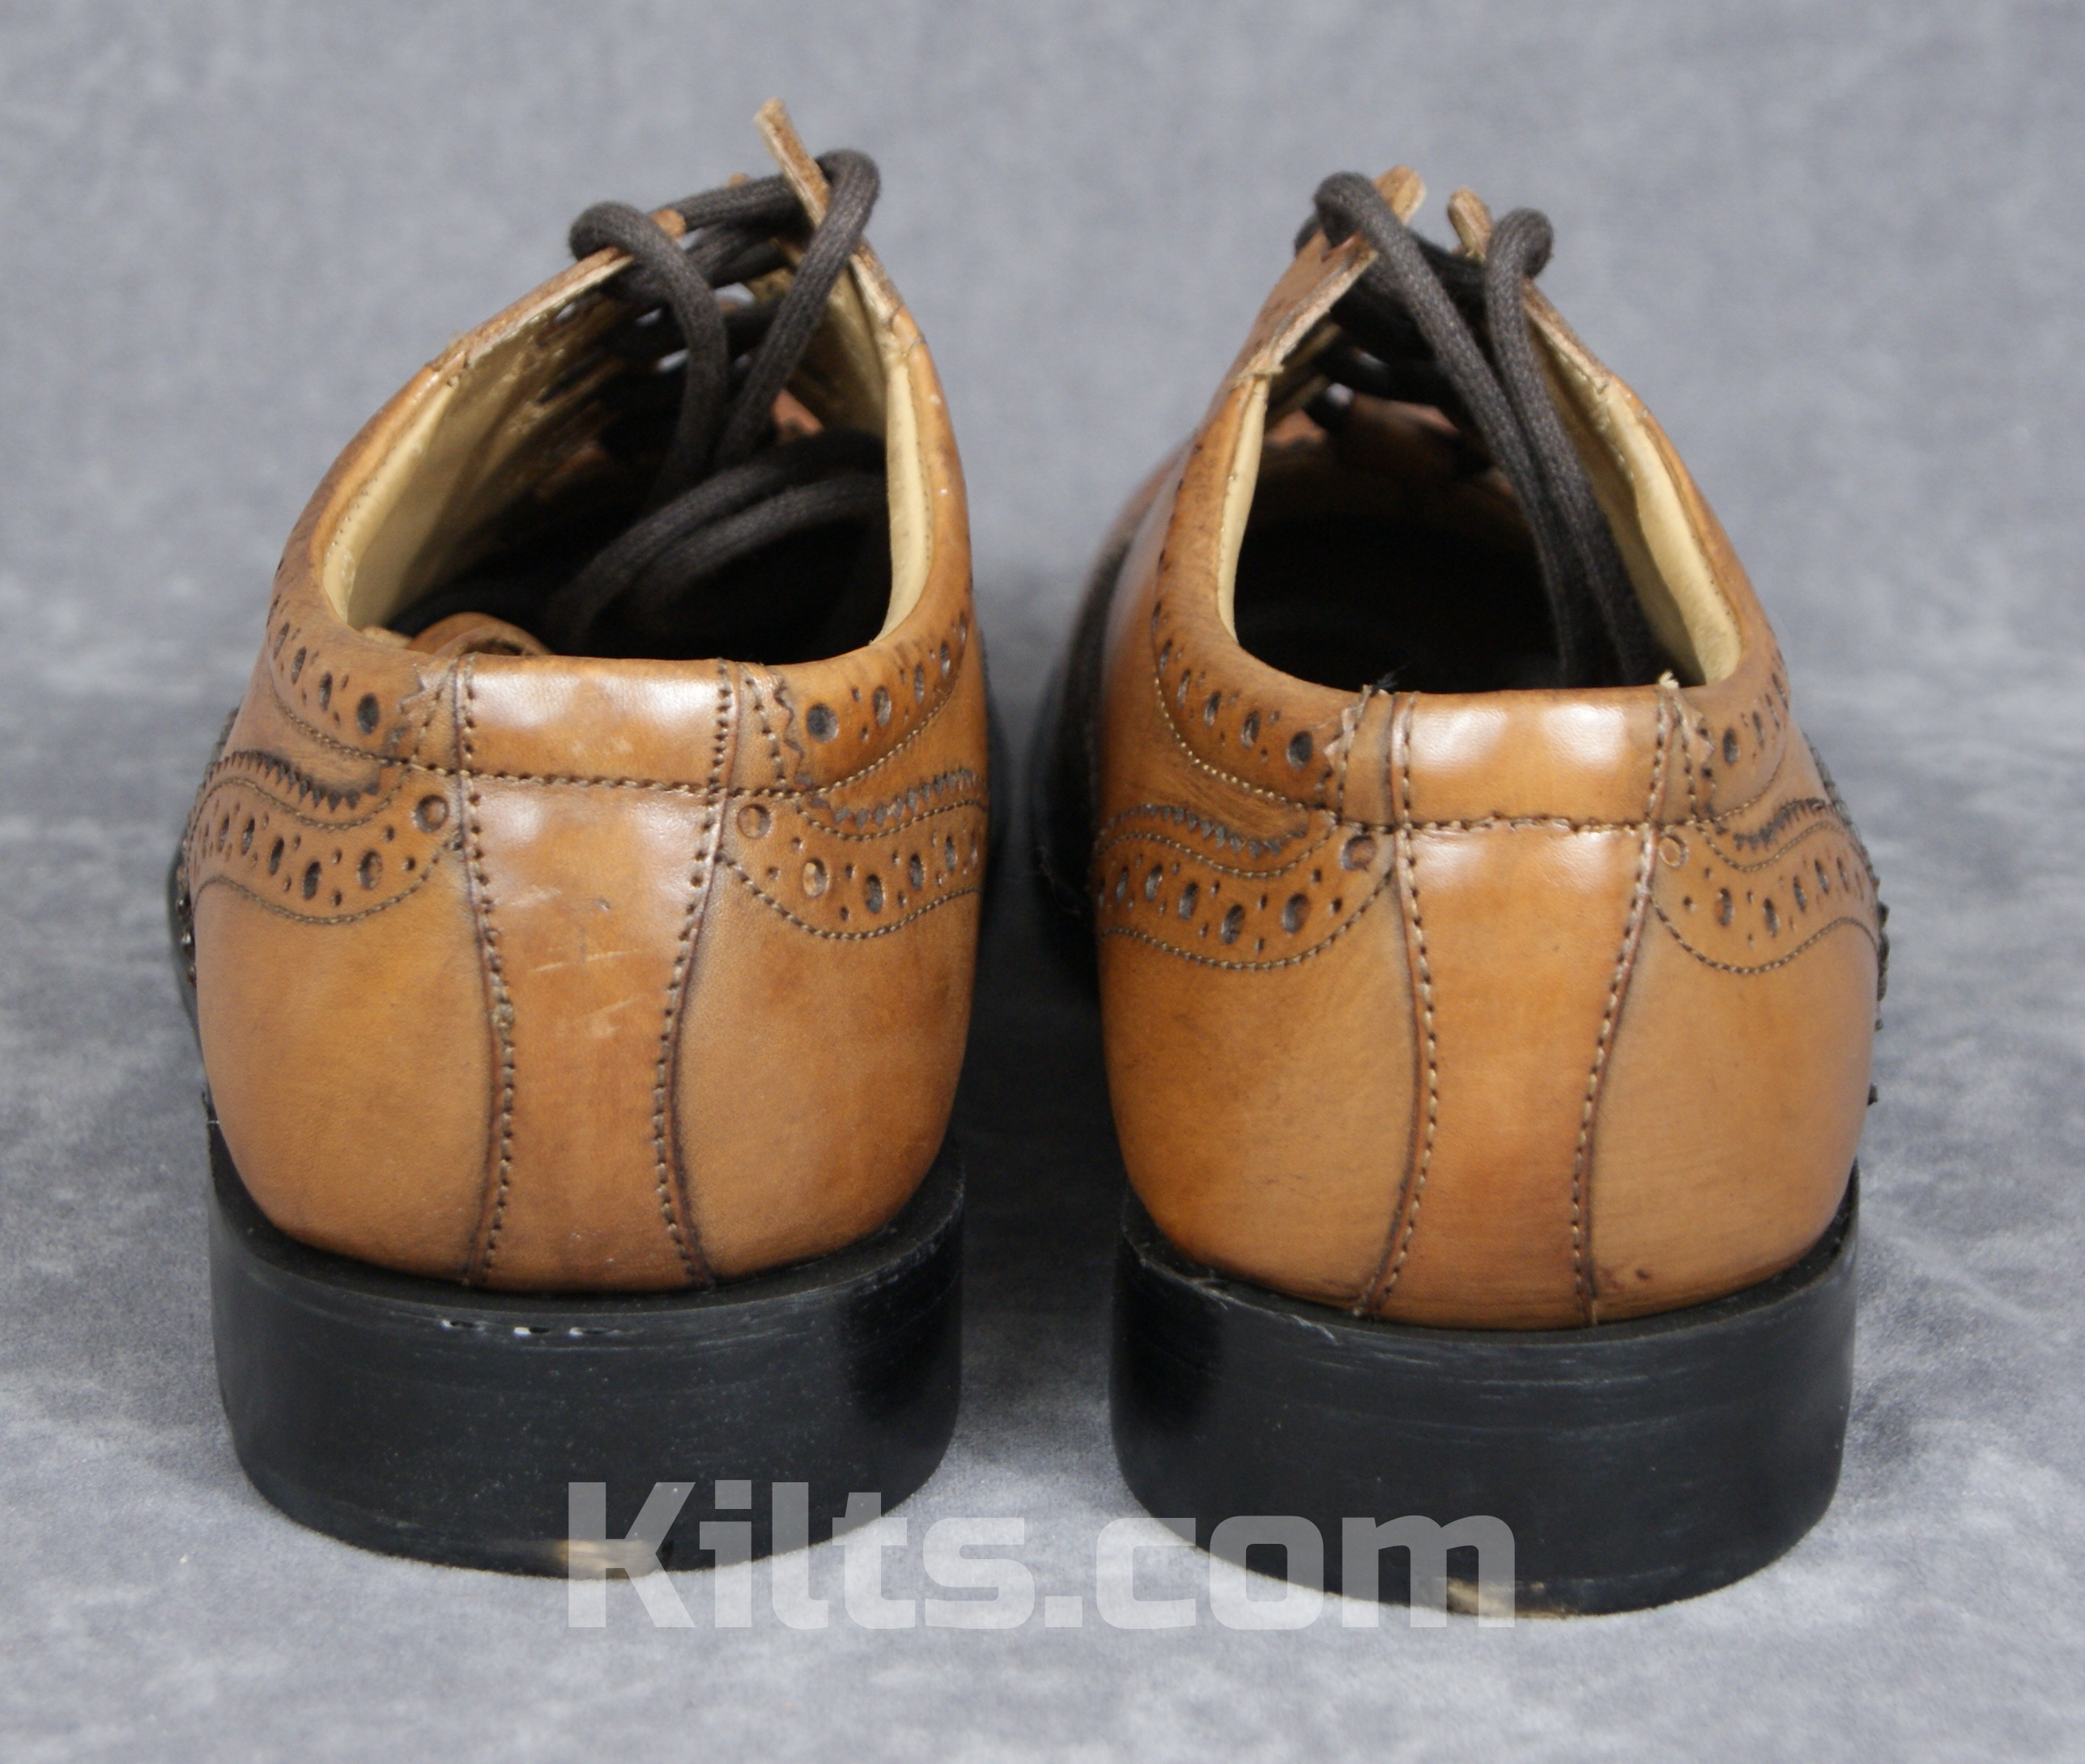 Check out our Culloden Ghillie Brogues for Kilts